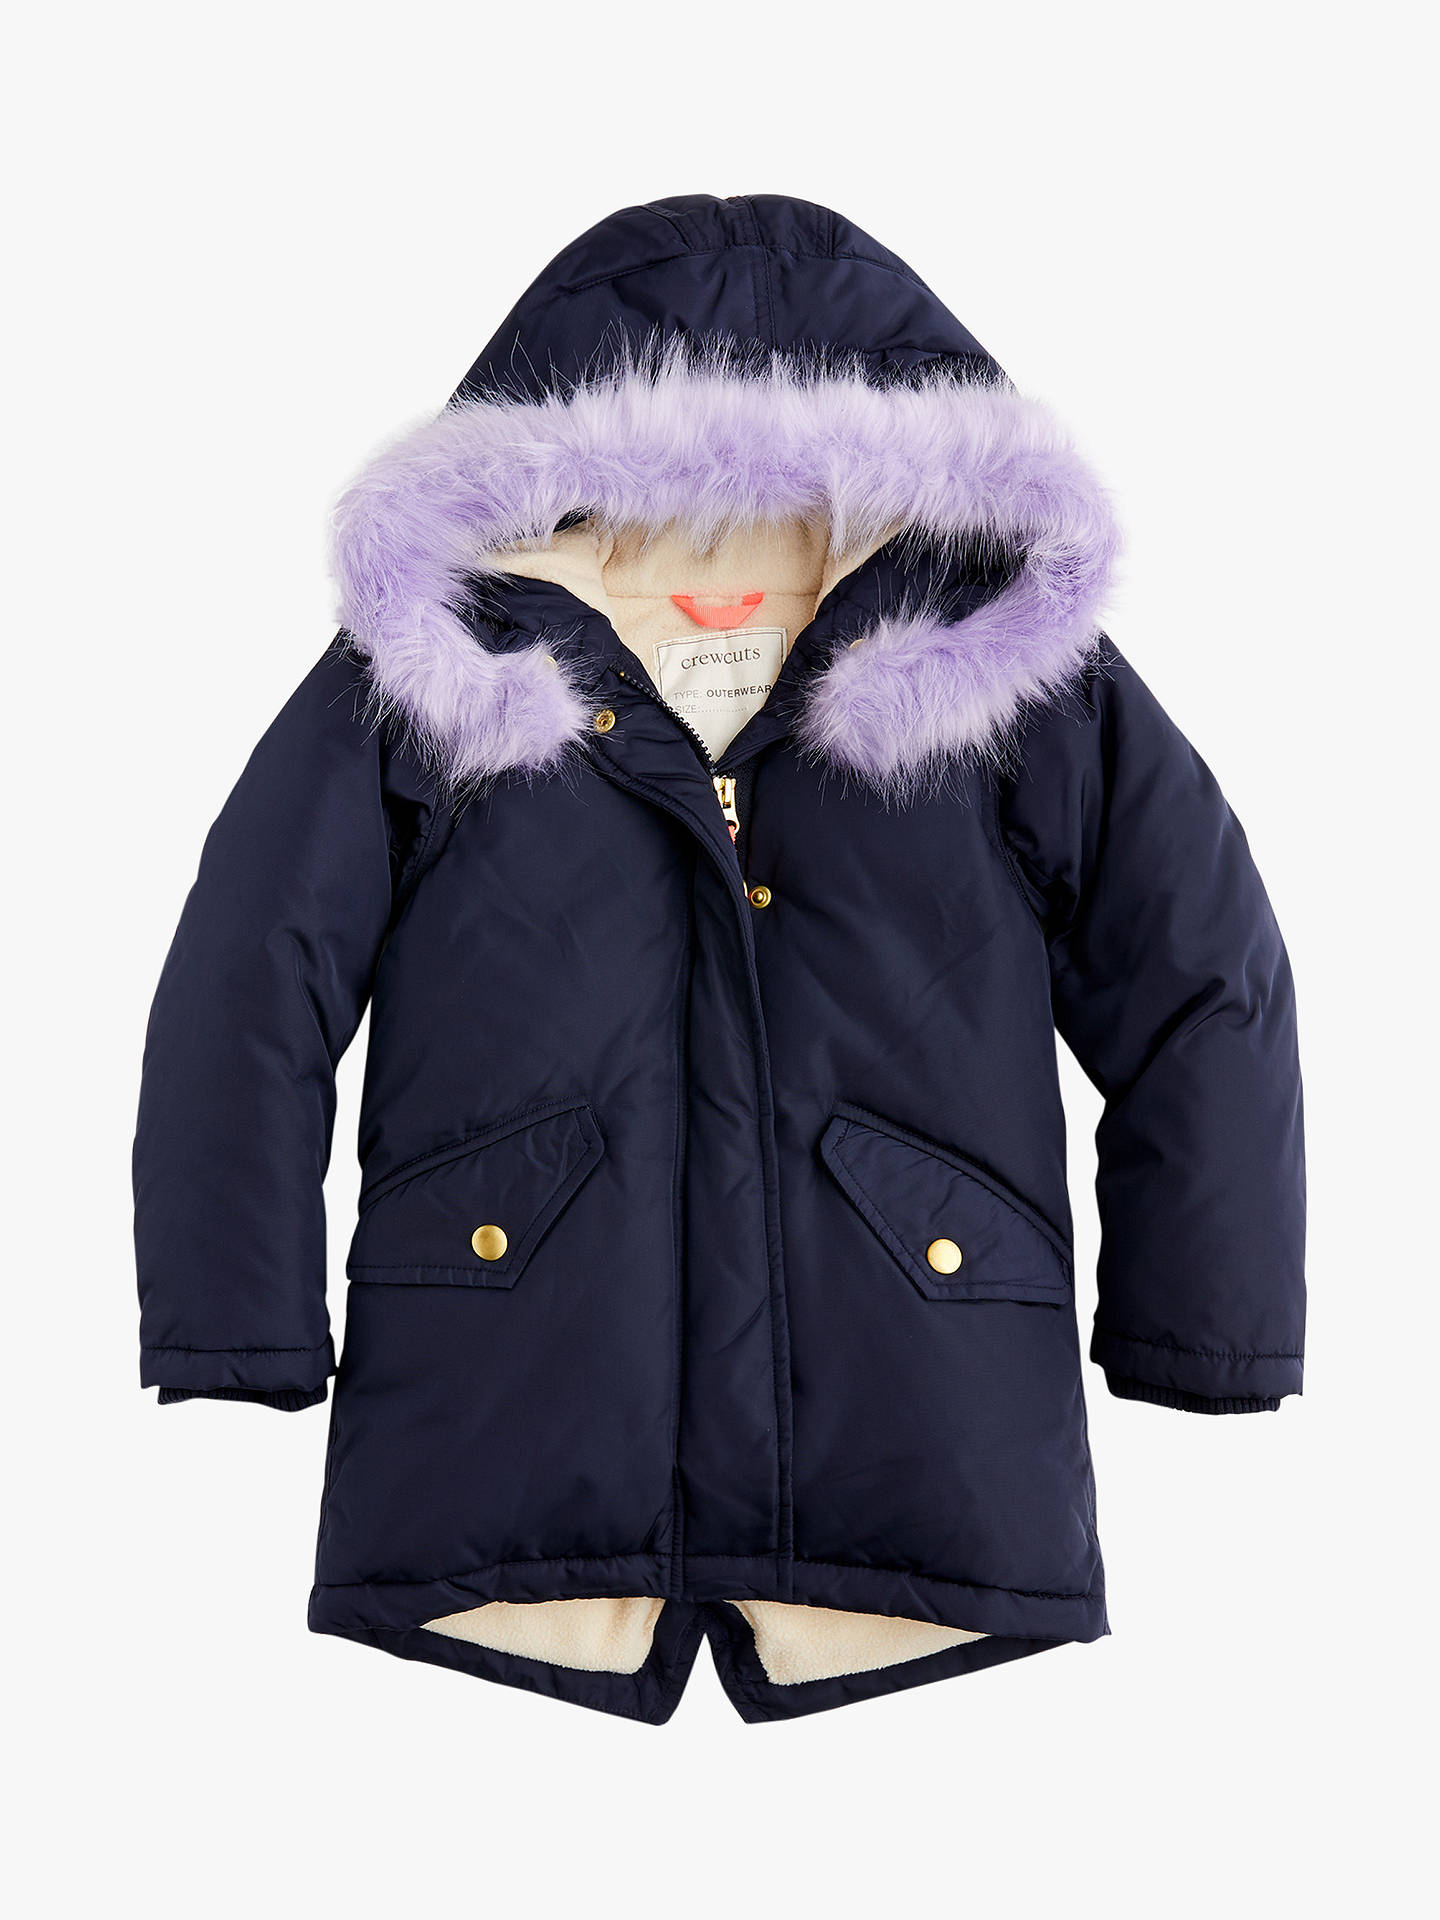 cfabf6d28 crewcuts by J.Crew Girls' Solid Puffer Jacket, Navy at John Lewis ...